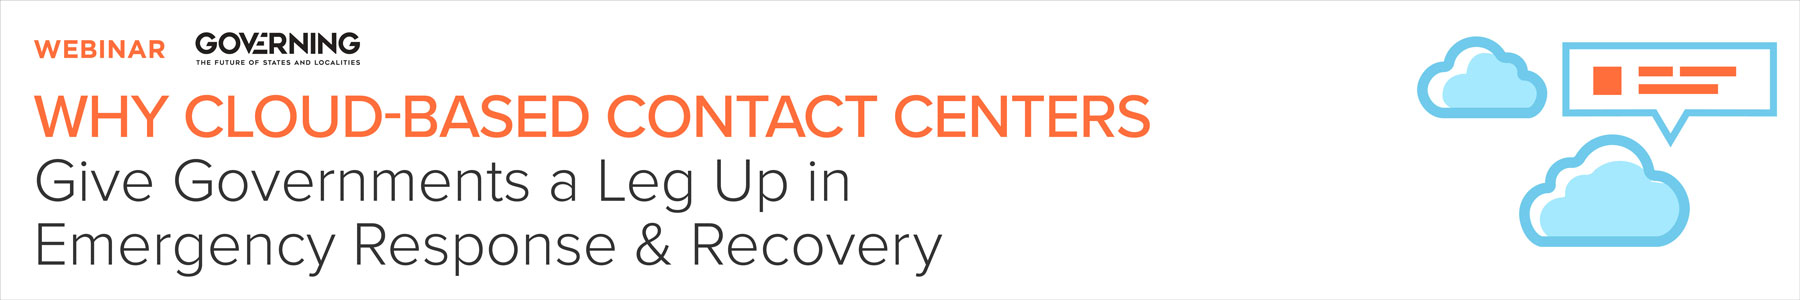 Why Cloud-Based Contact Centers Give Governments a Leg Up in Emergency Response & Recovery